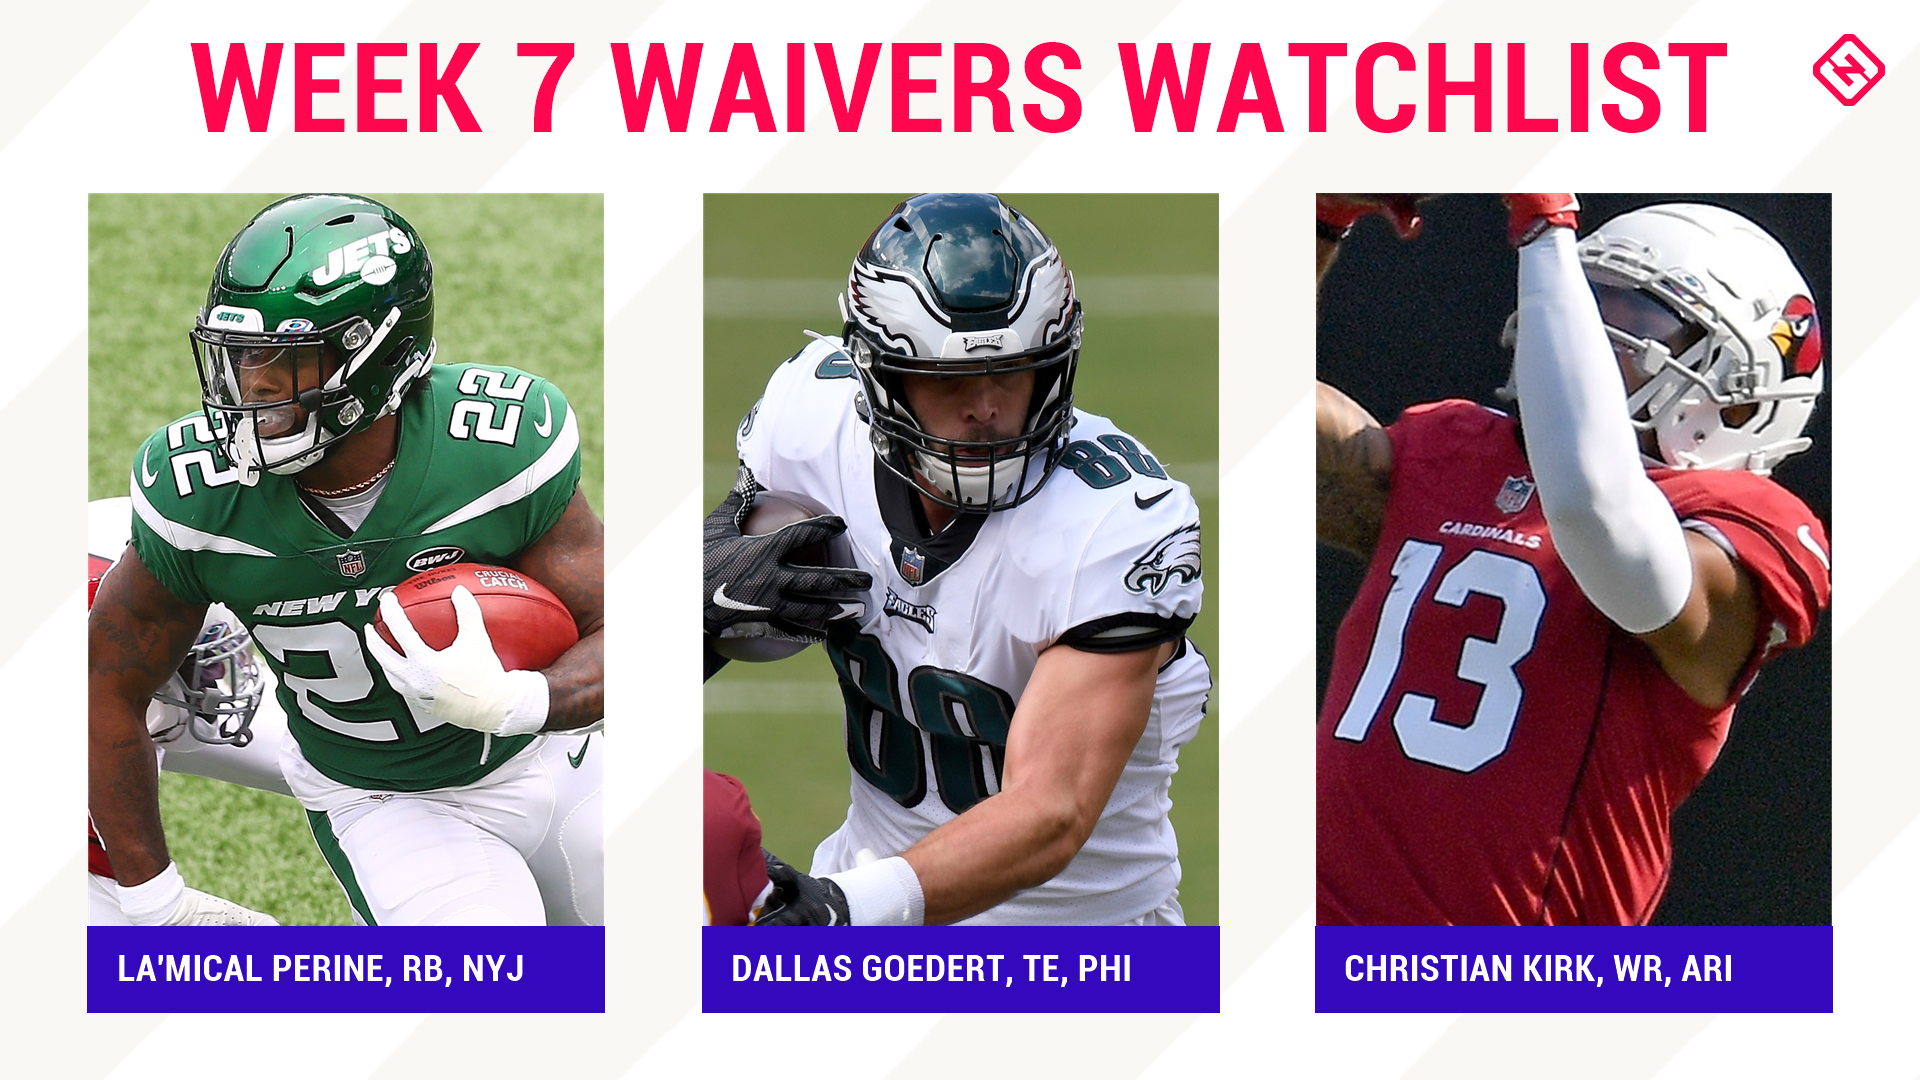 Fantasy Football Waiver Wire Watchlist for Week 7: Streaming targets, free agent sleepers include La'Mical Perine, Dallas Goedert, Christian Kirk